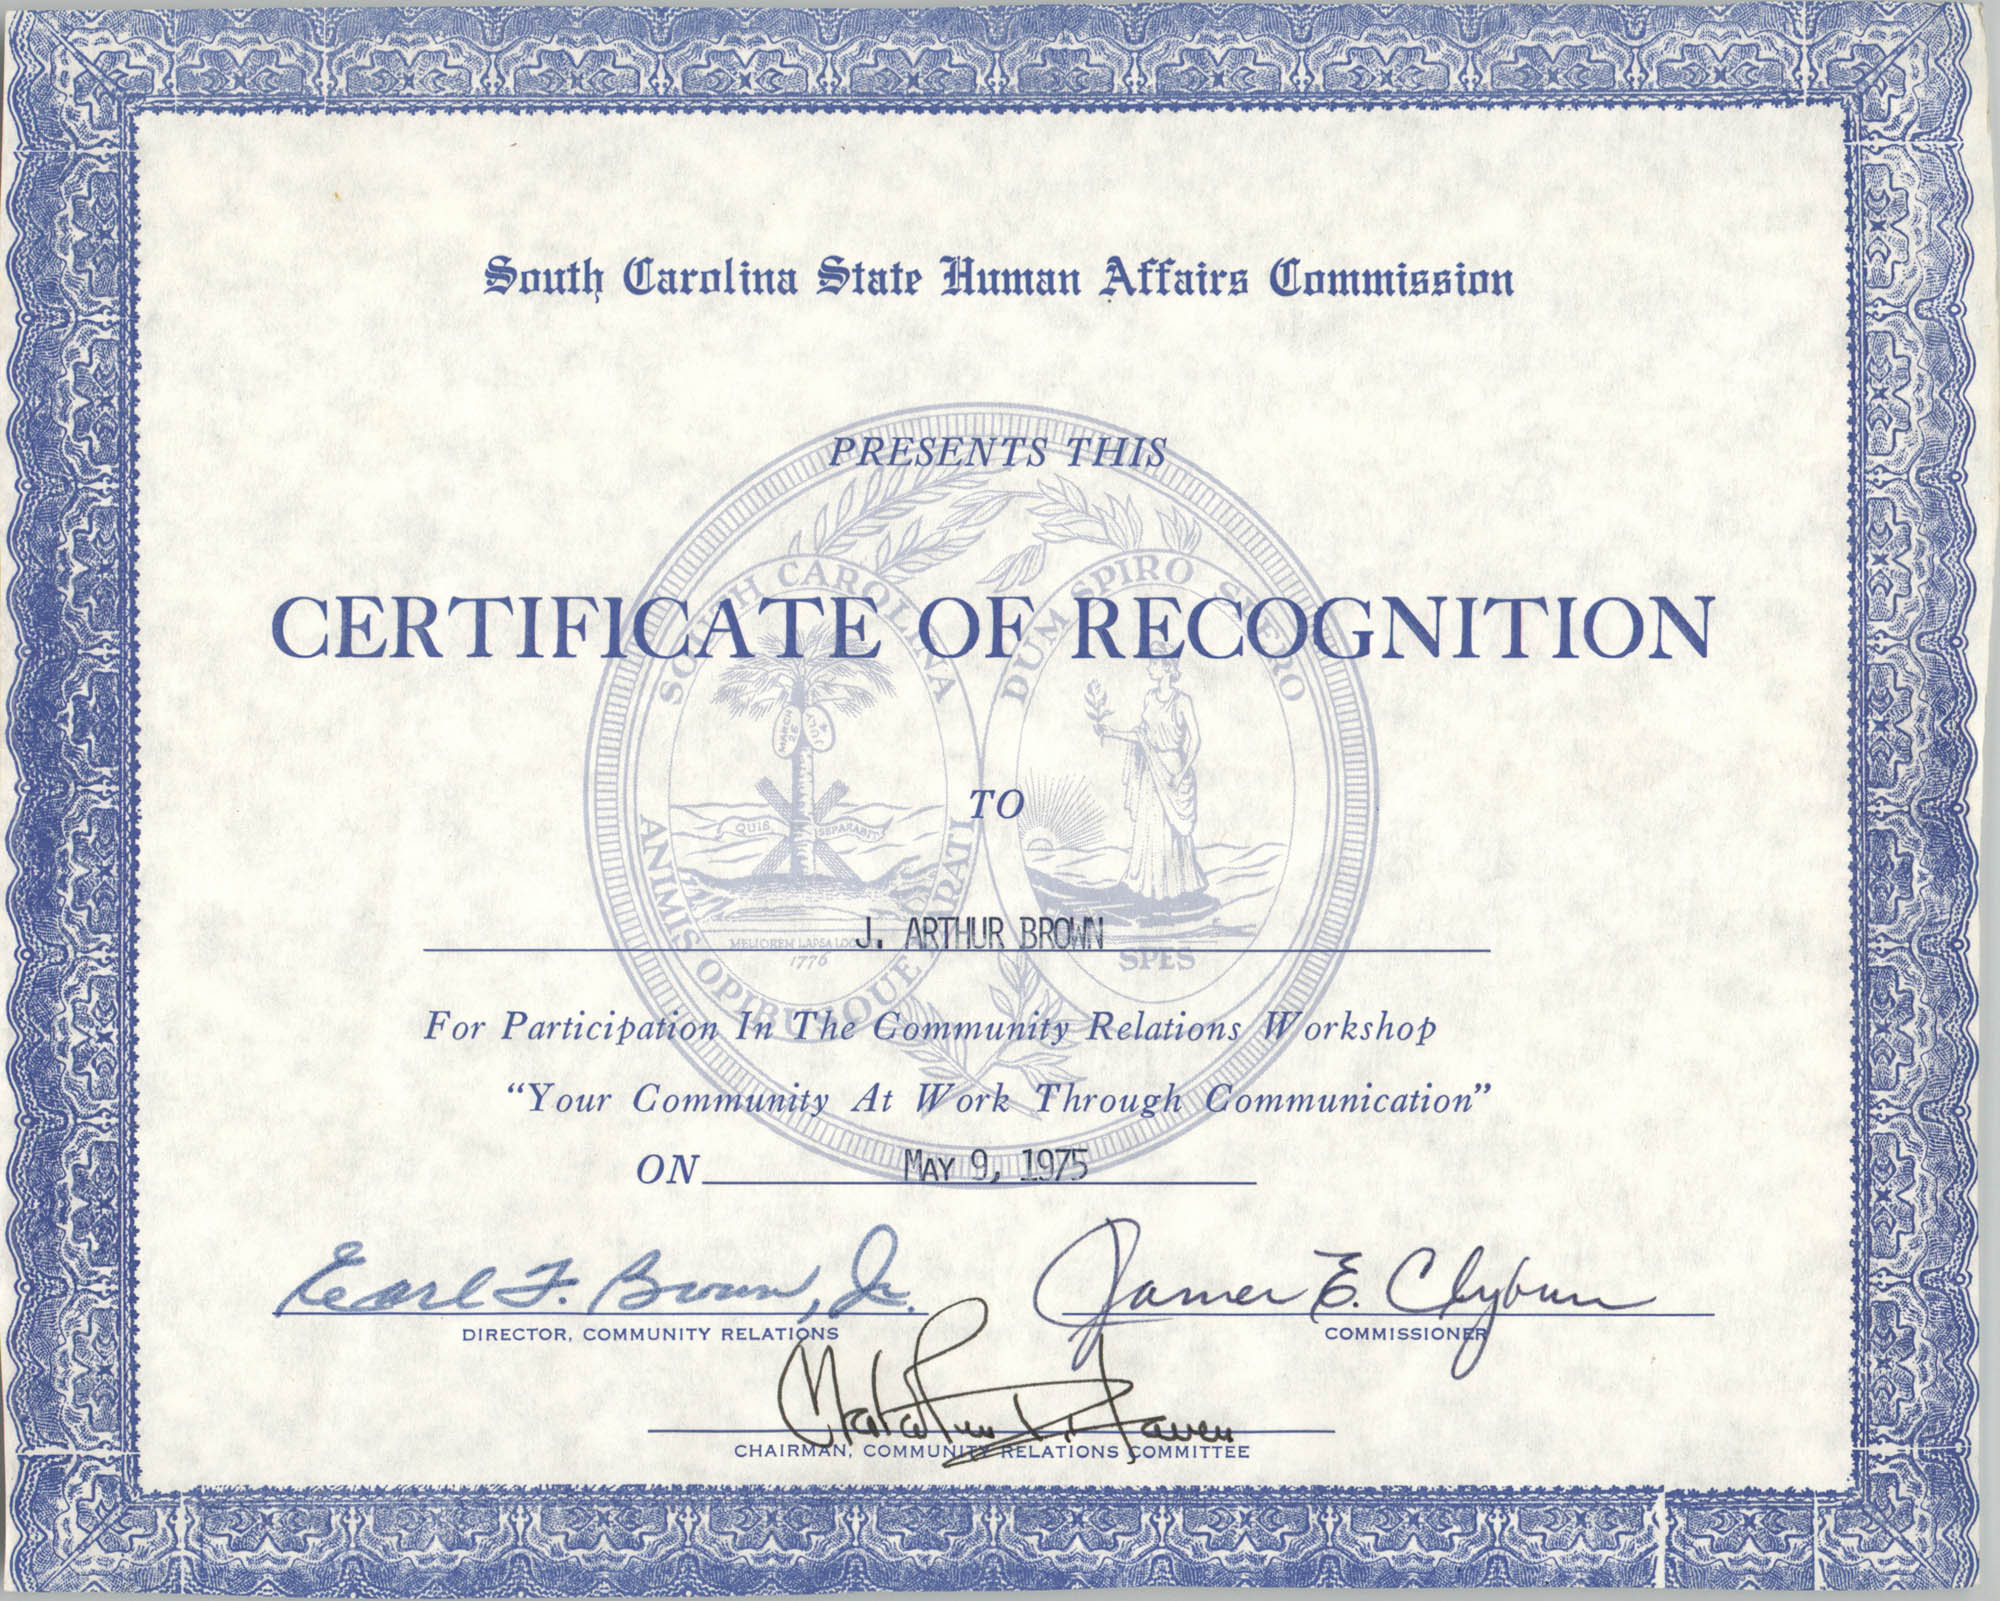 South Carolina State Human Affairs Commision Certificate of Recognition to J. Arthur Brown